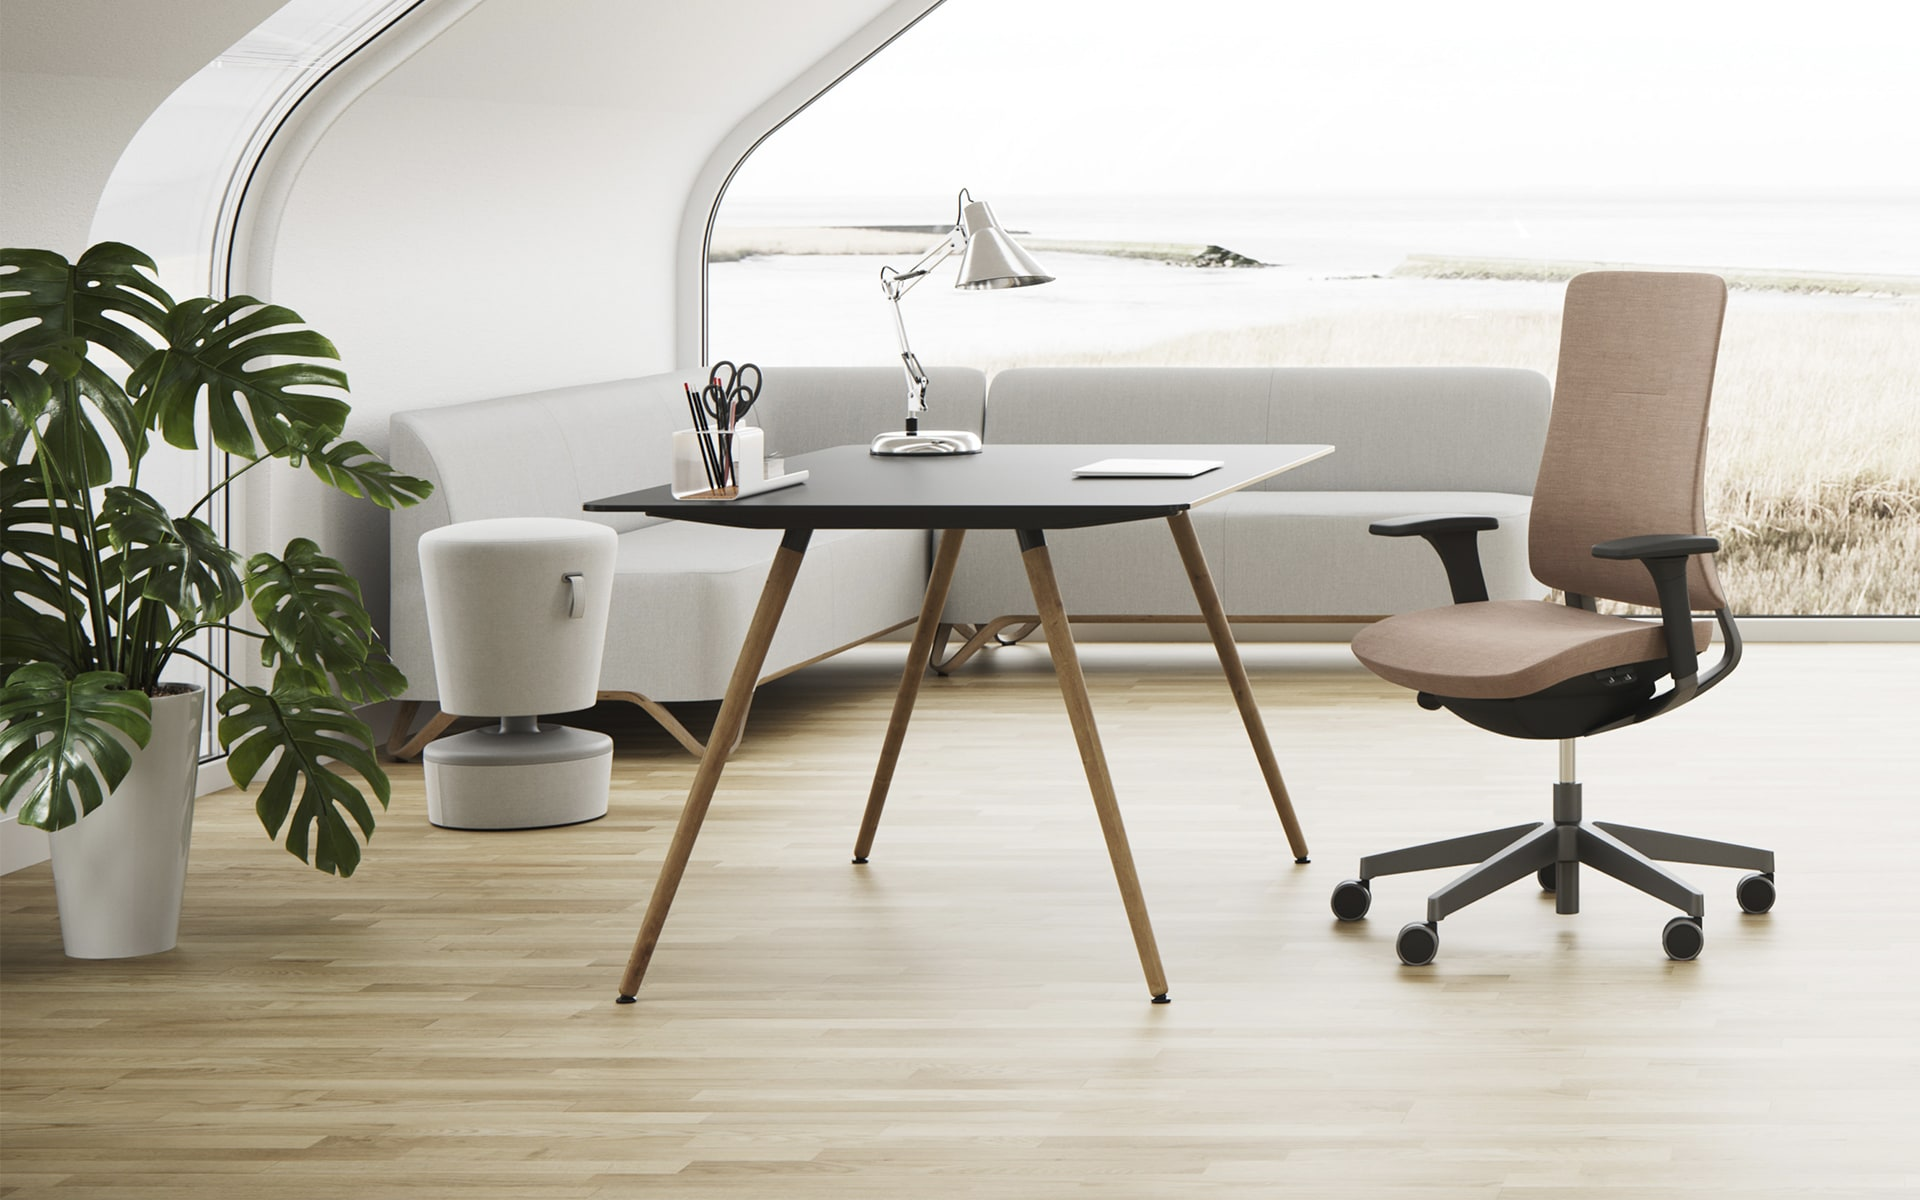 Profim Sam table by ITO Design in modern office in natural tones with large windows